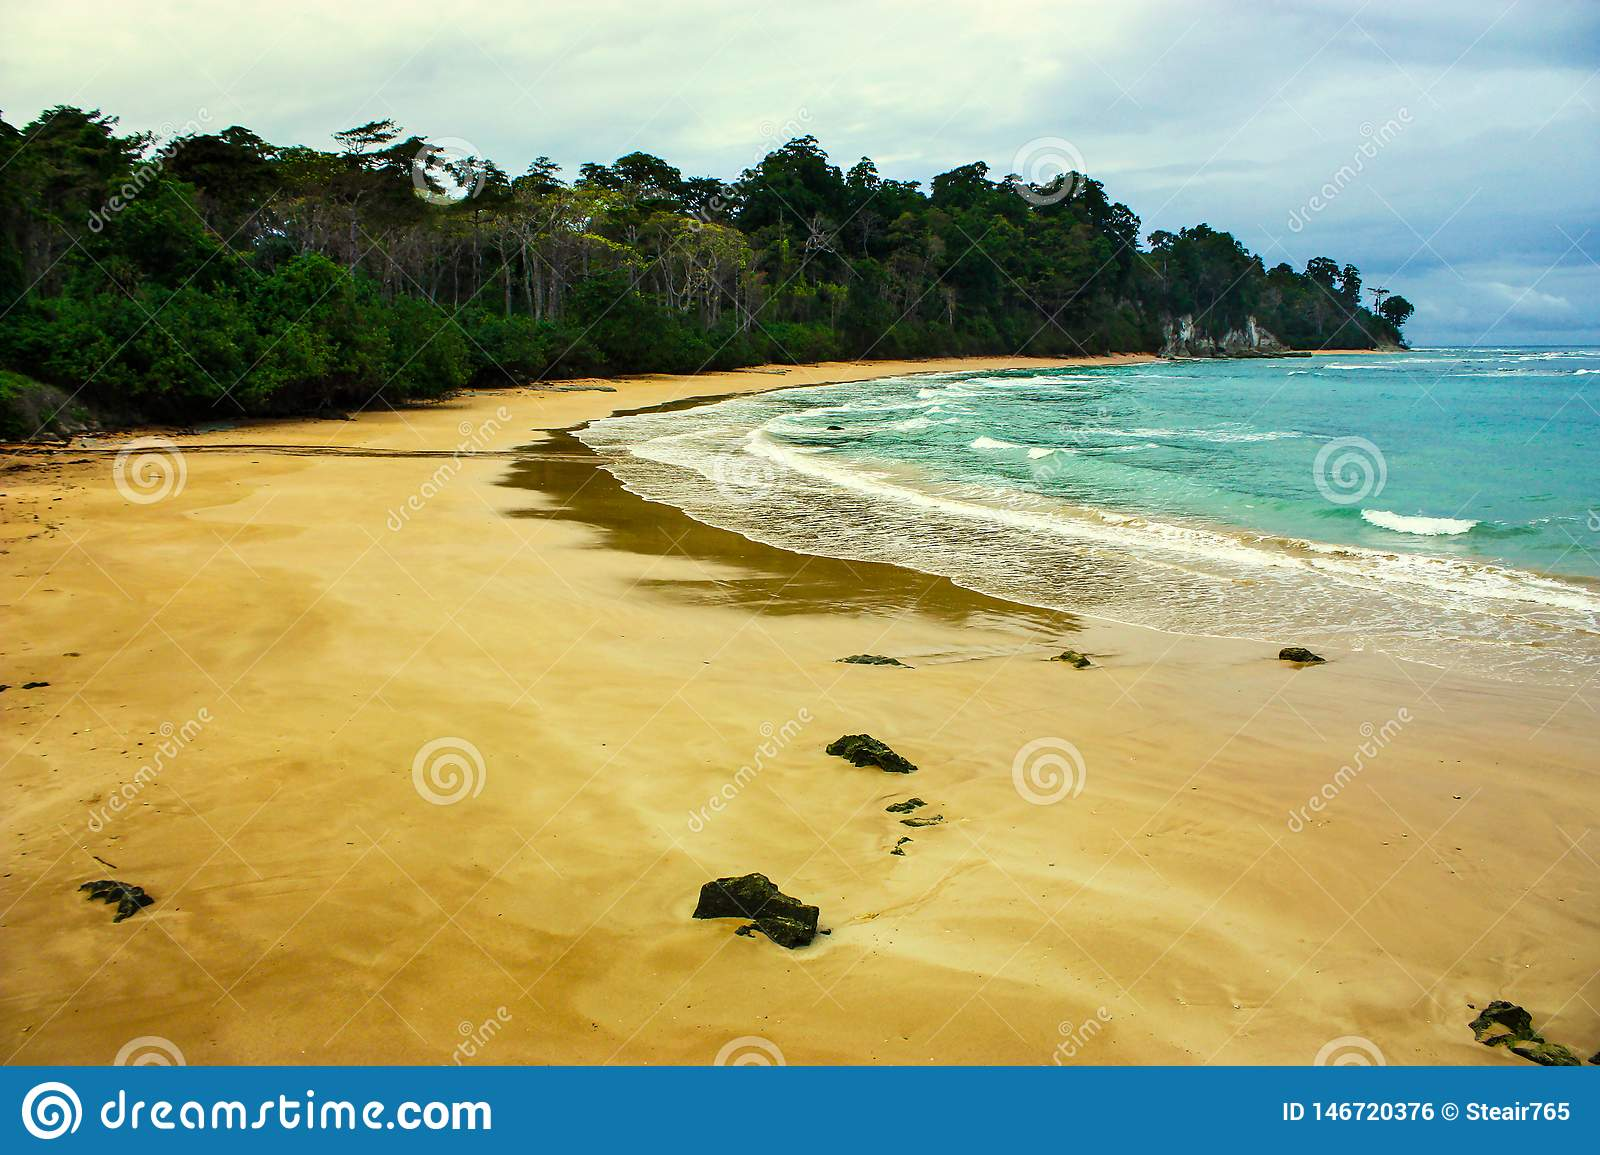 Beach with cloudy sky and lush forest